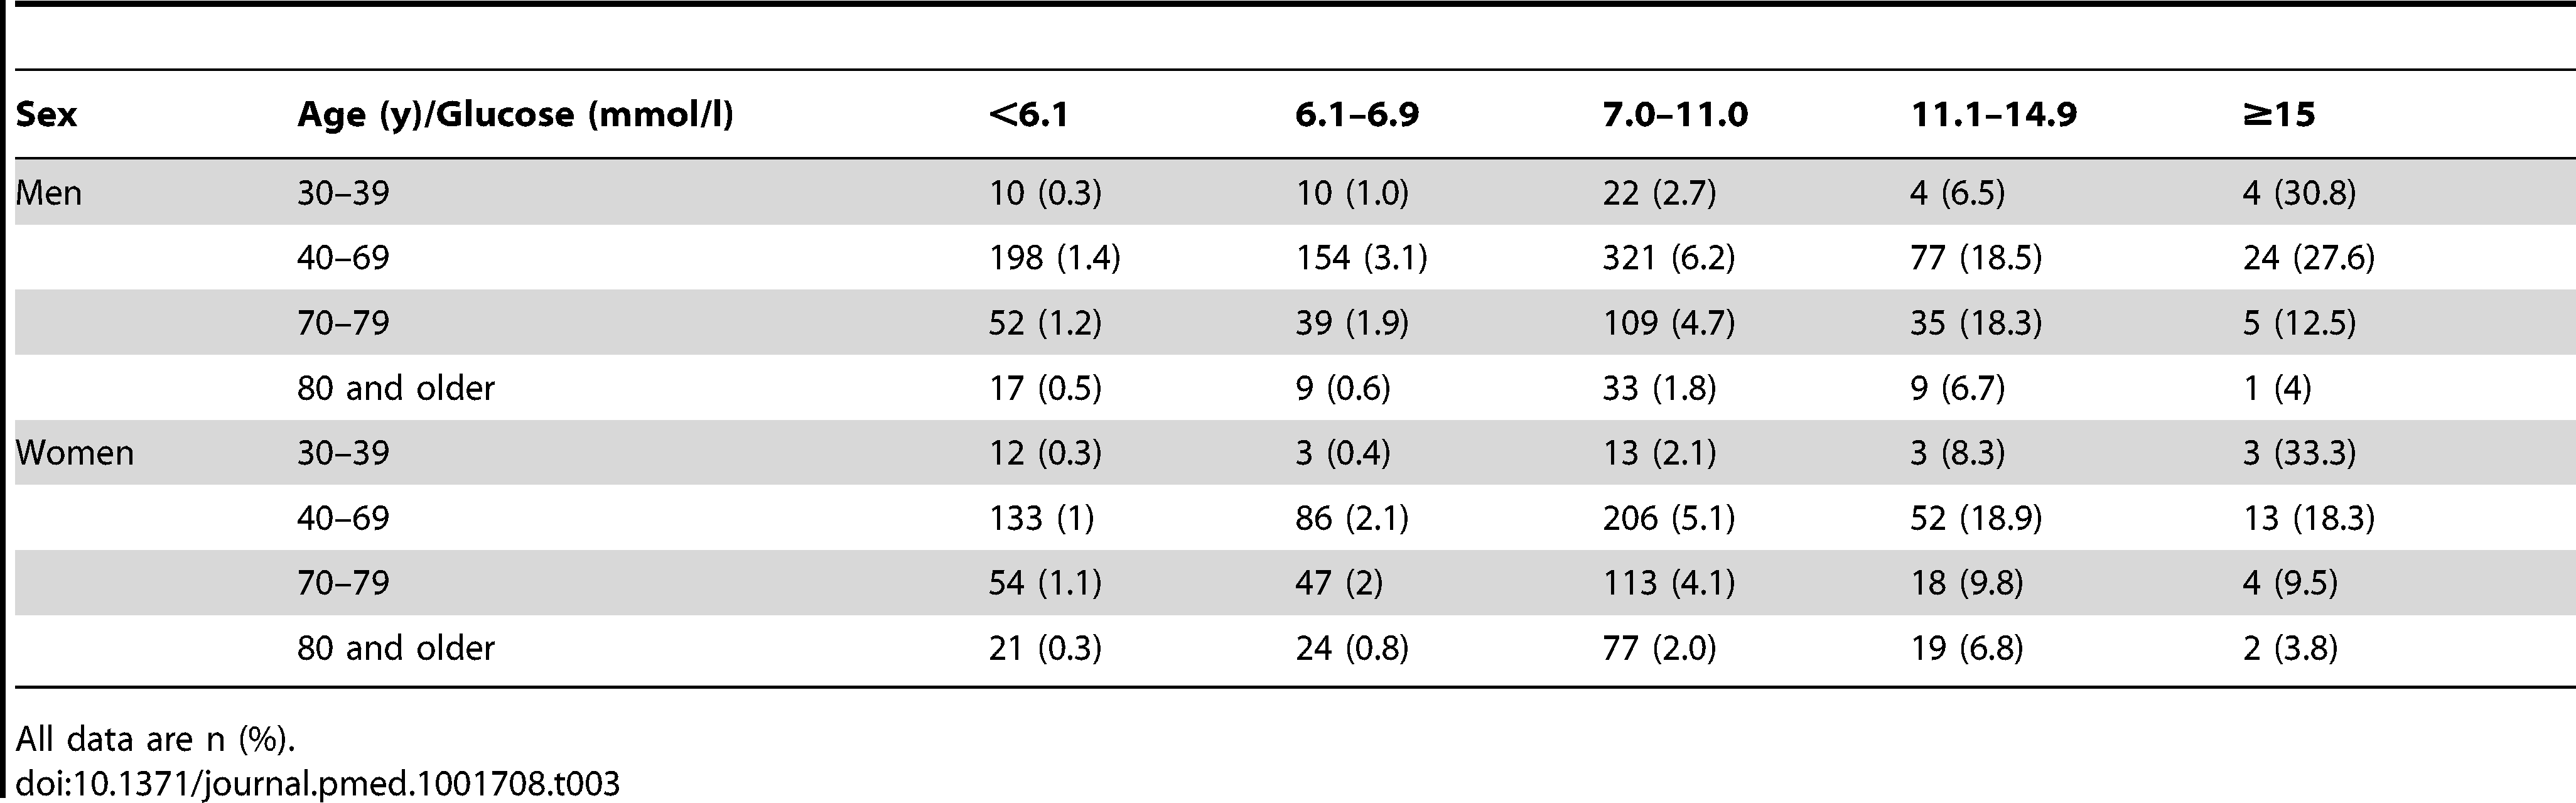 3-year risk of type 2 diabetes stratified by admission glucose, age, and sex.